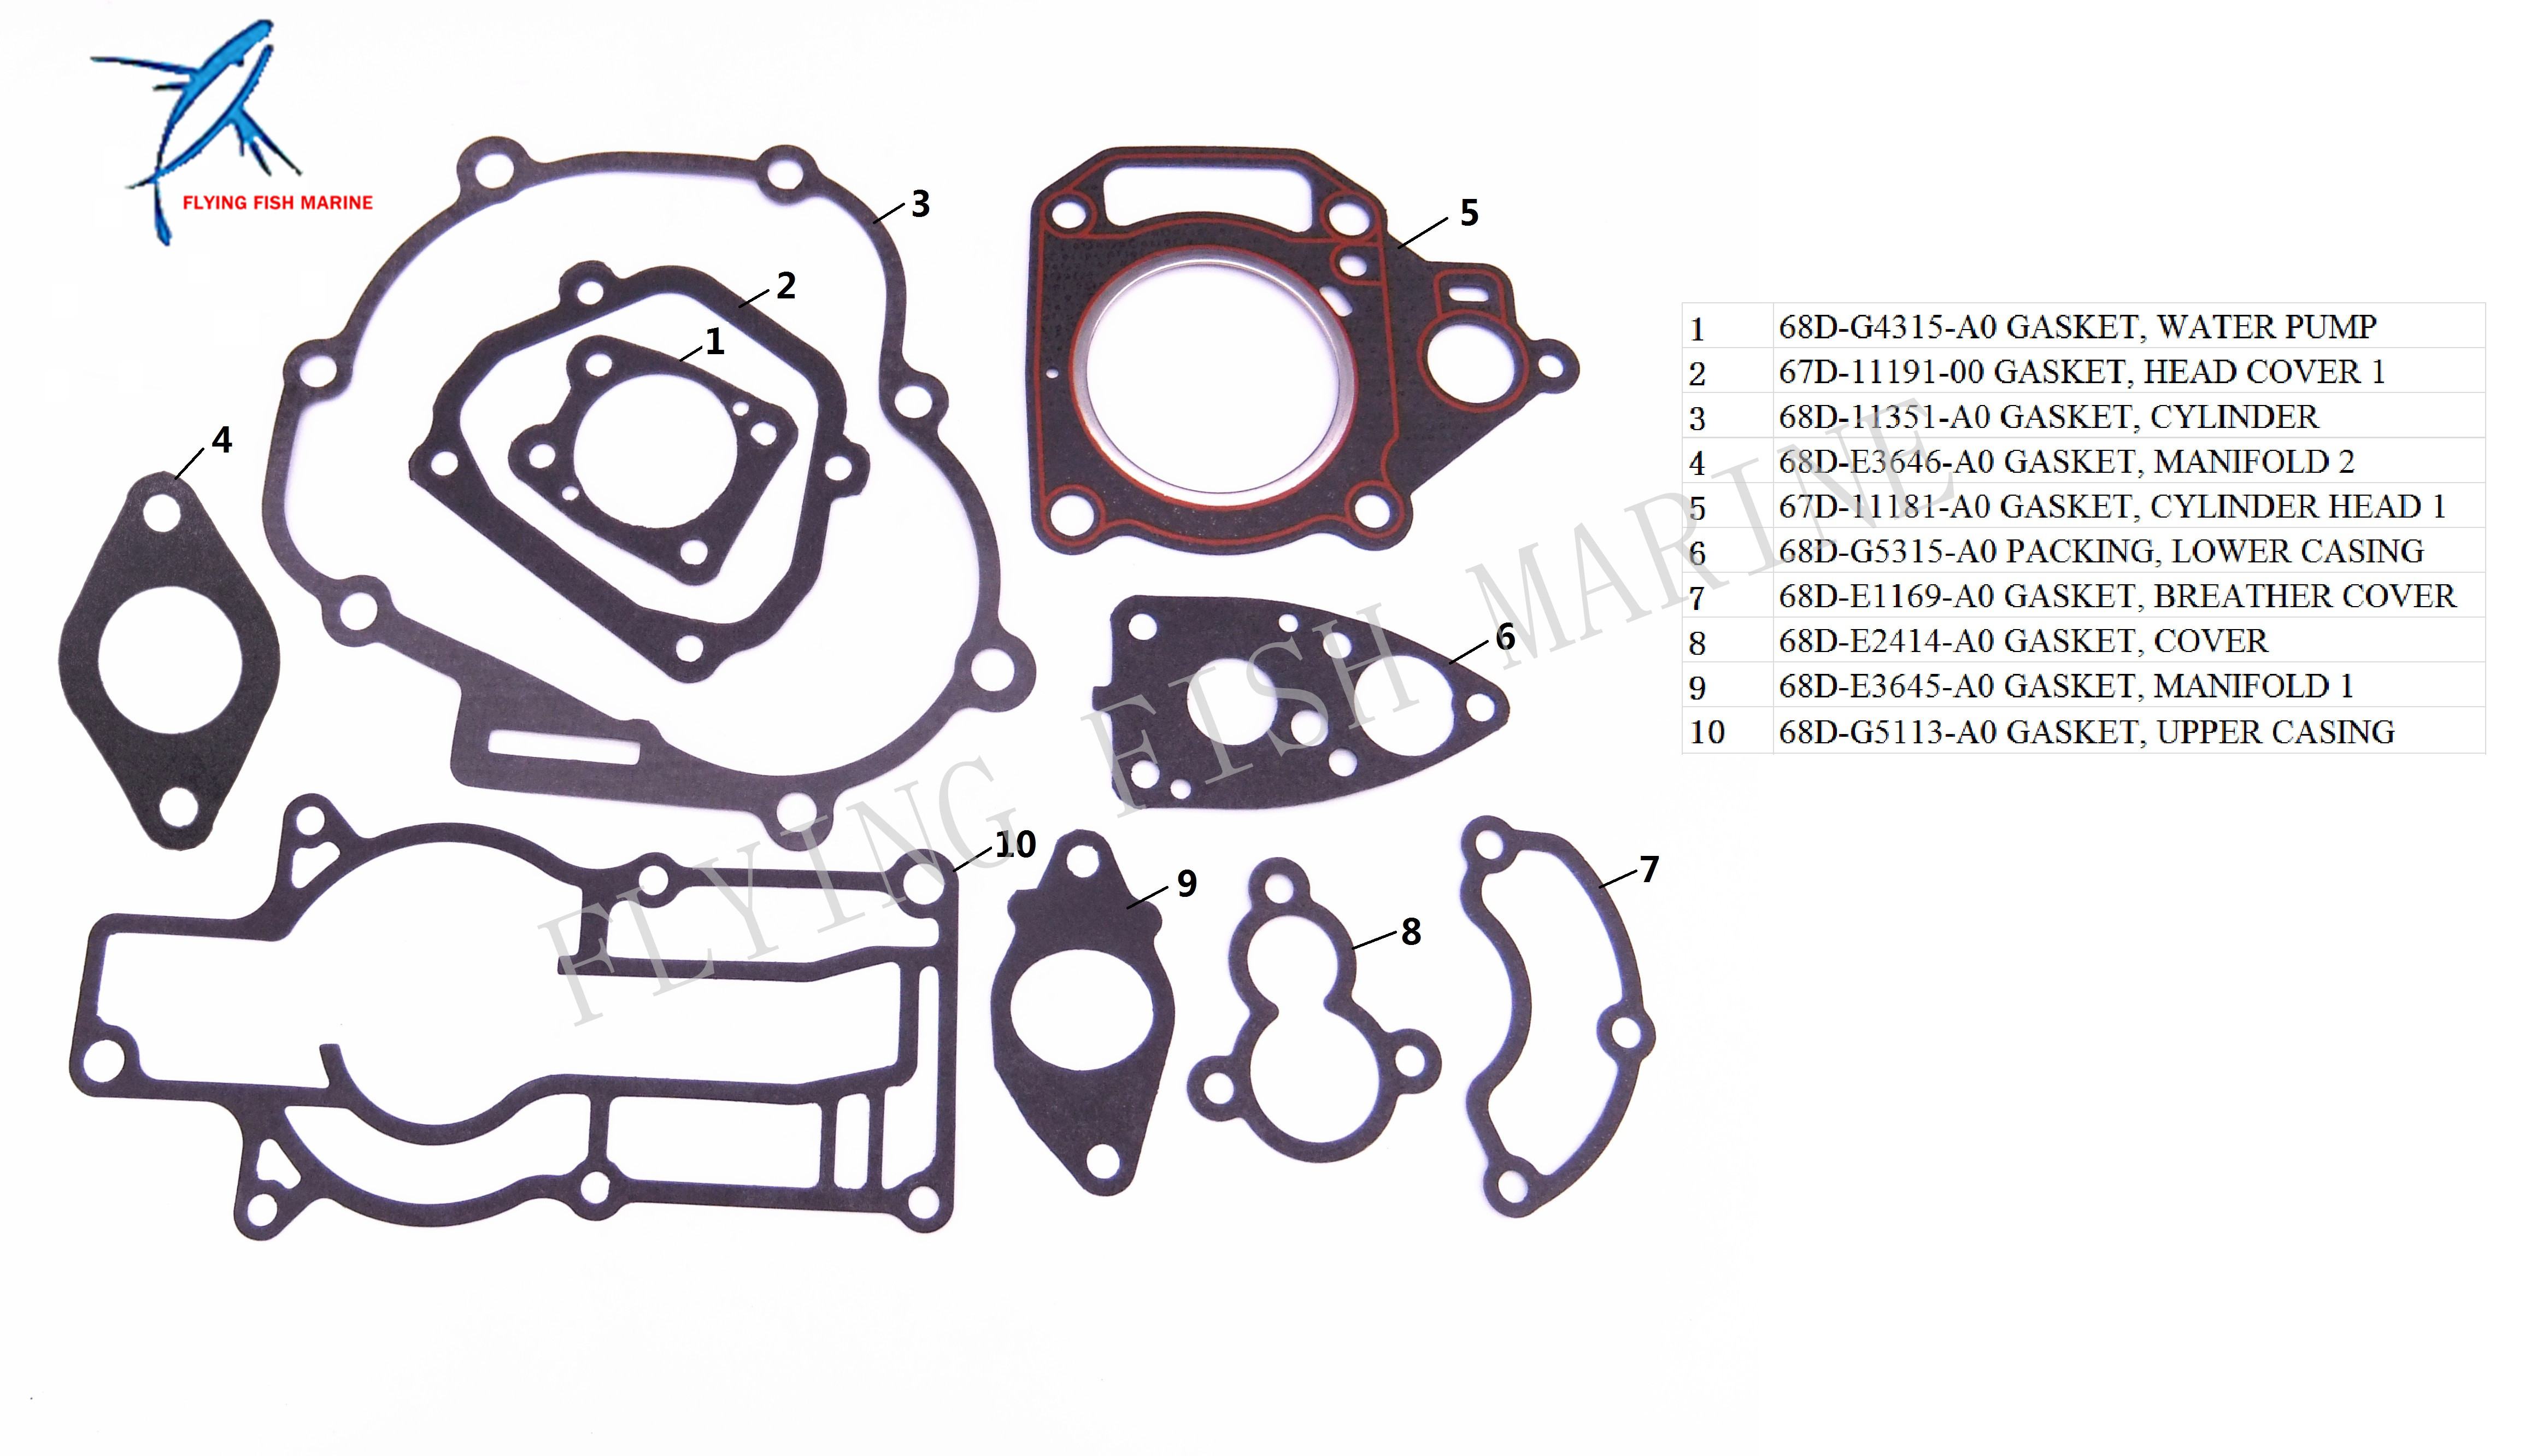 Outboard Engine 6a1 11181 A1 00 27 80313m Cylinder Head Gasket For Diagram Of 8 2 Cyl2strokeinternational Mercury Complete Power Seal Kit Yamaha F4 Boat Motor Free Shipping